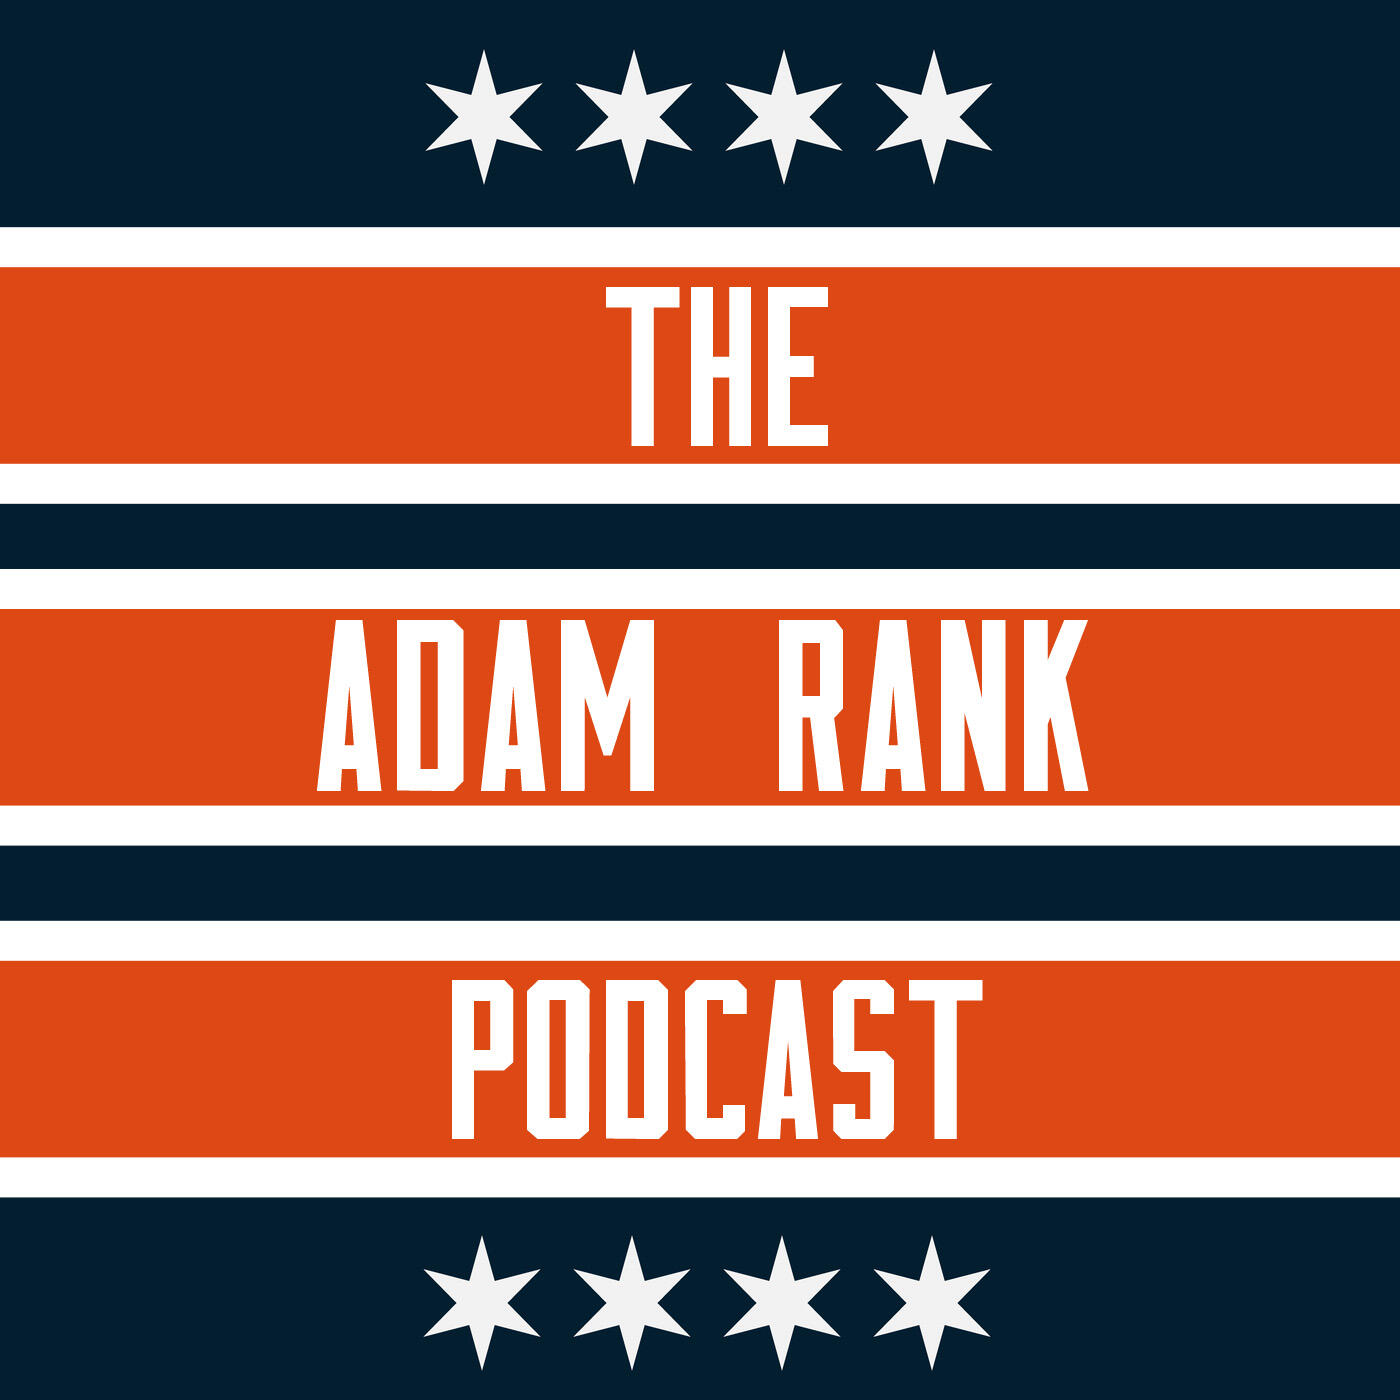 Listen to the The Adam Rank Podcast Episode - Week 7 Lineup Advice | 2019 NFL Fantasy on iHeartRadio | iHeartRadio